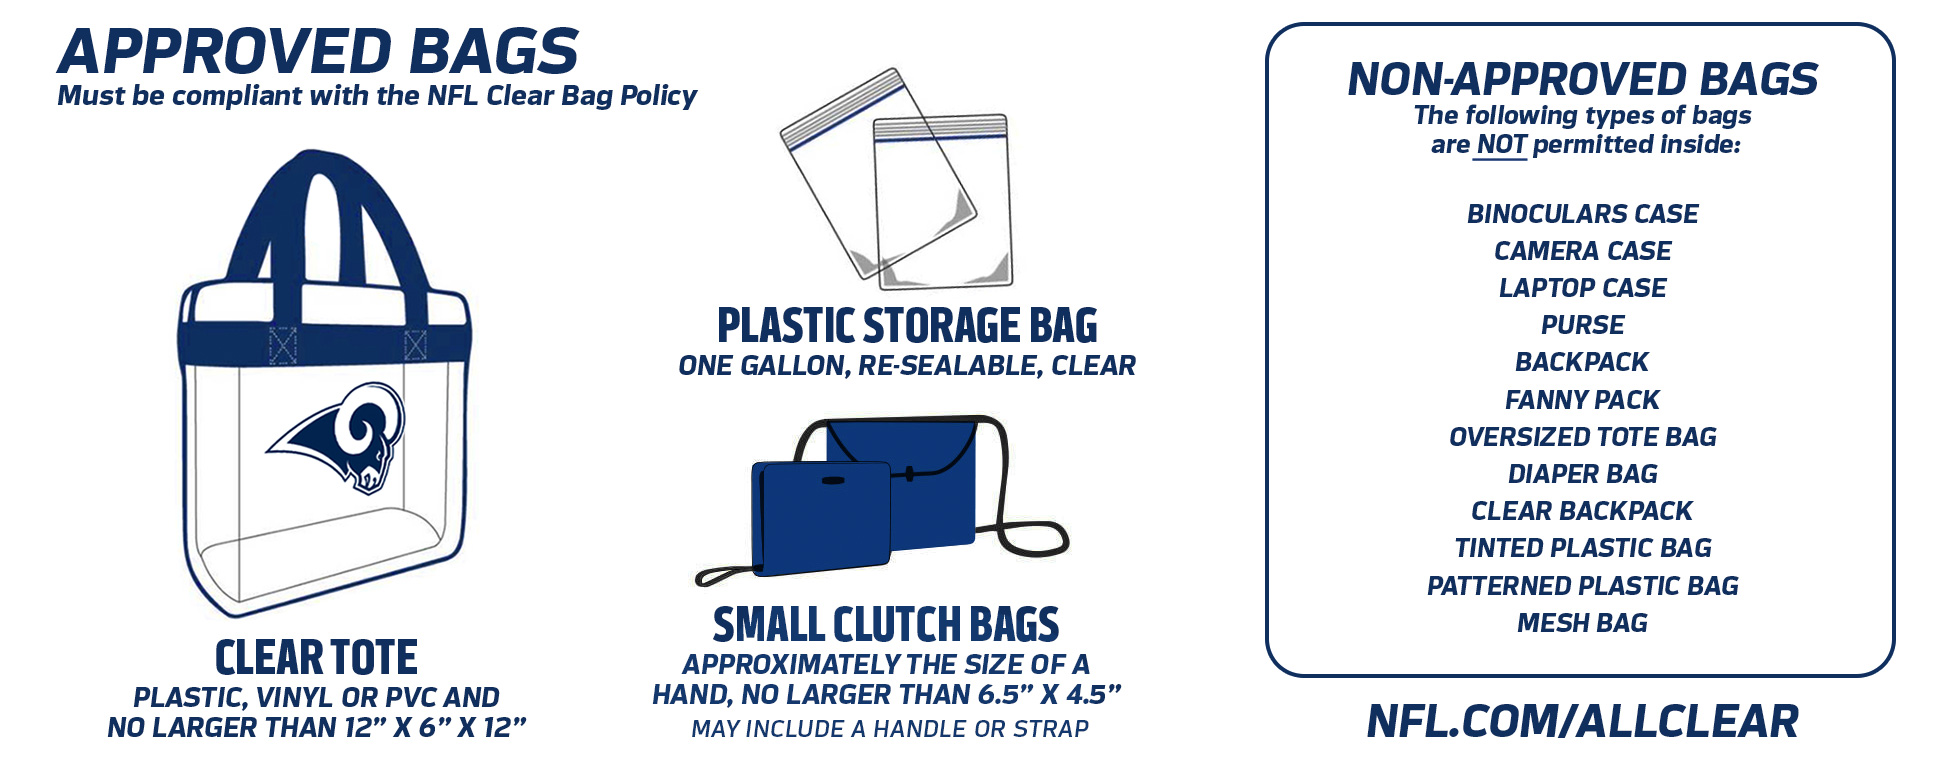 NFL clear bag policy graphics